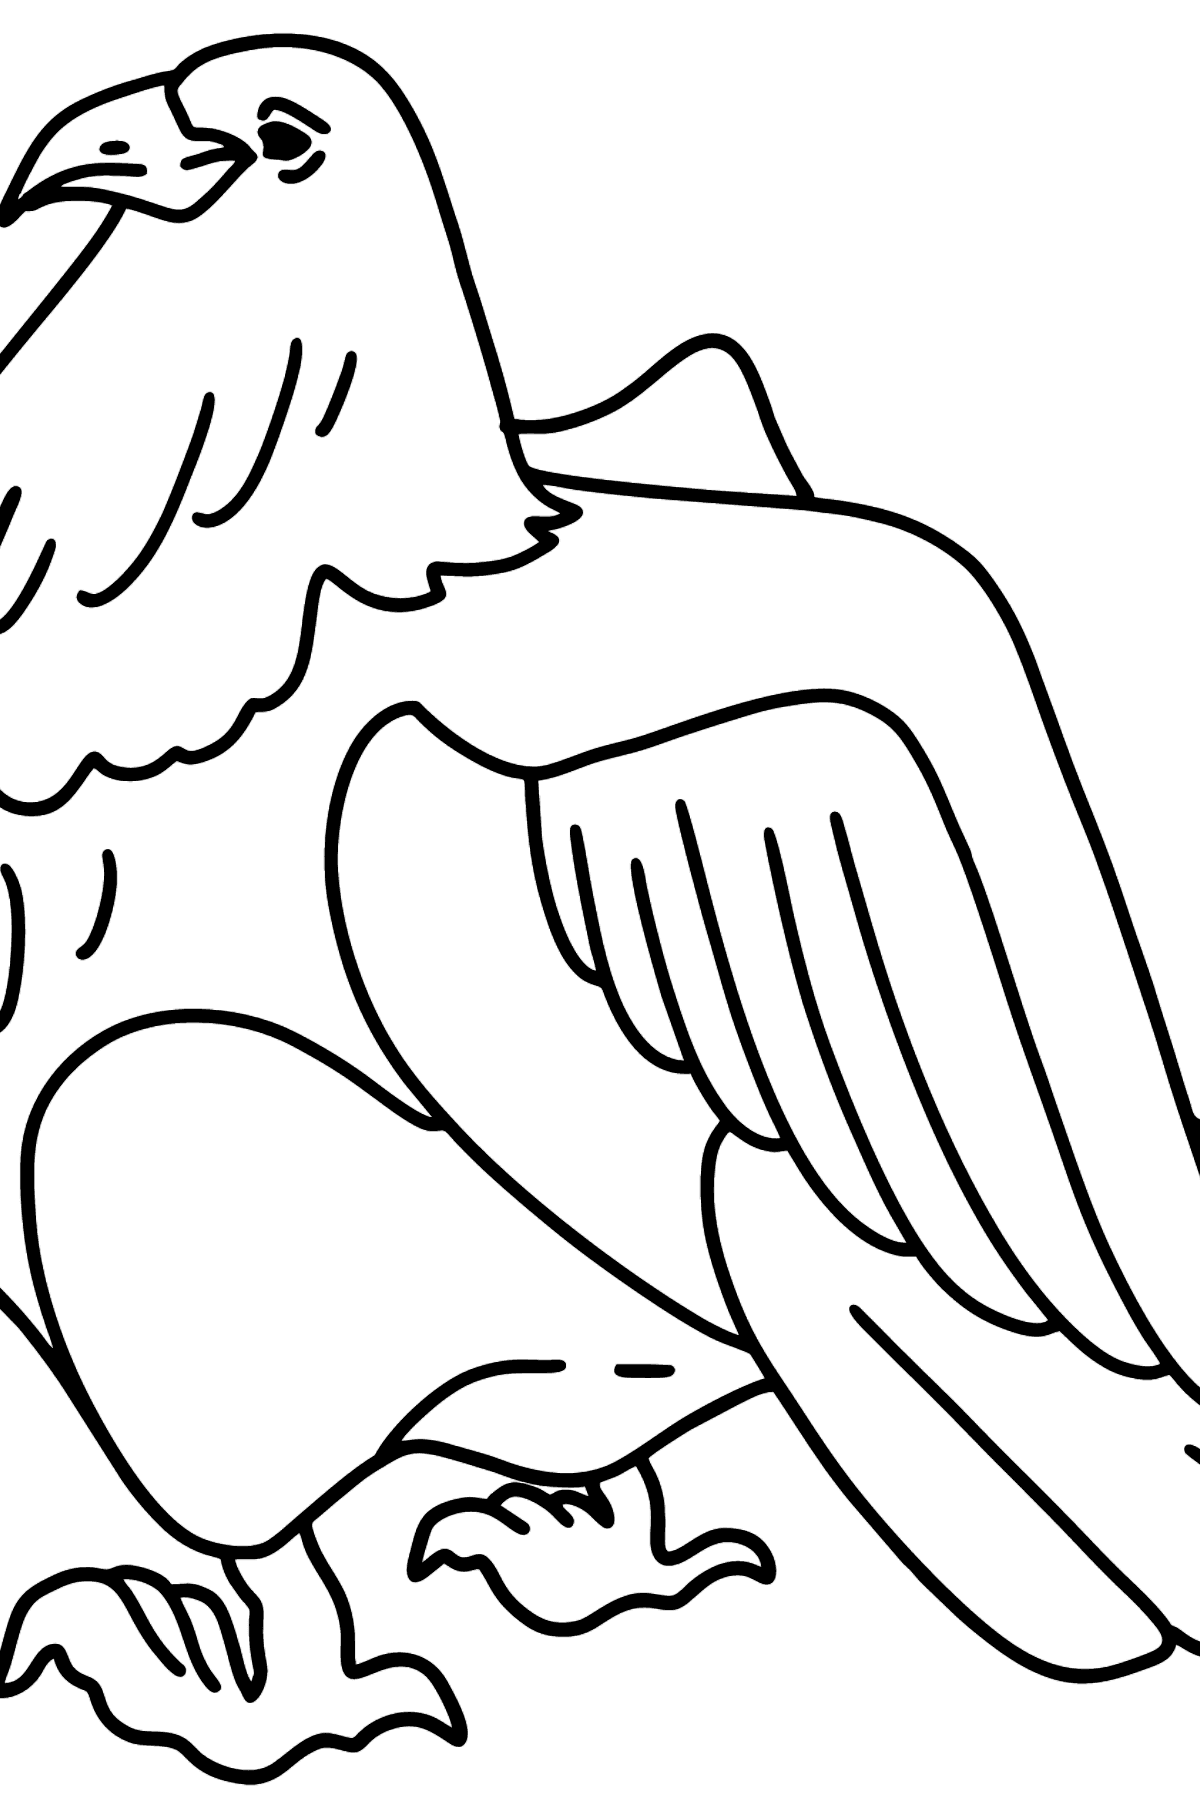 A beautiful eagle coloring page - Coloring Pages for Kids